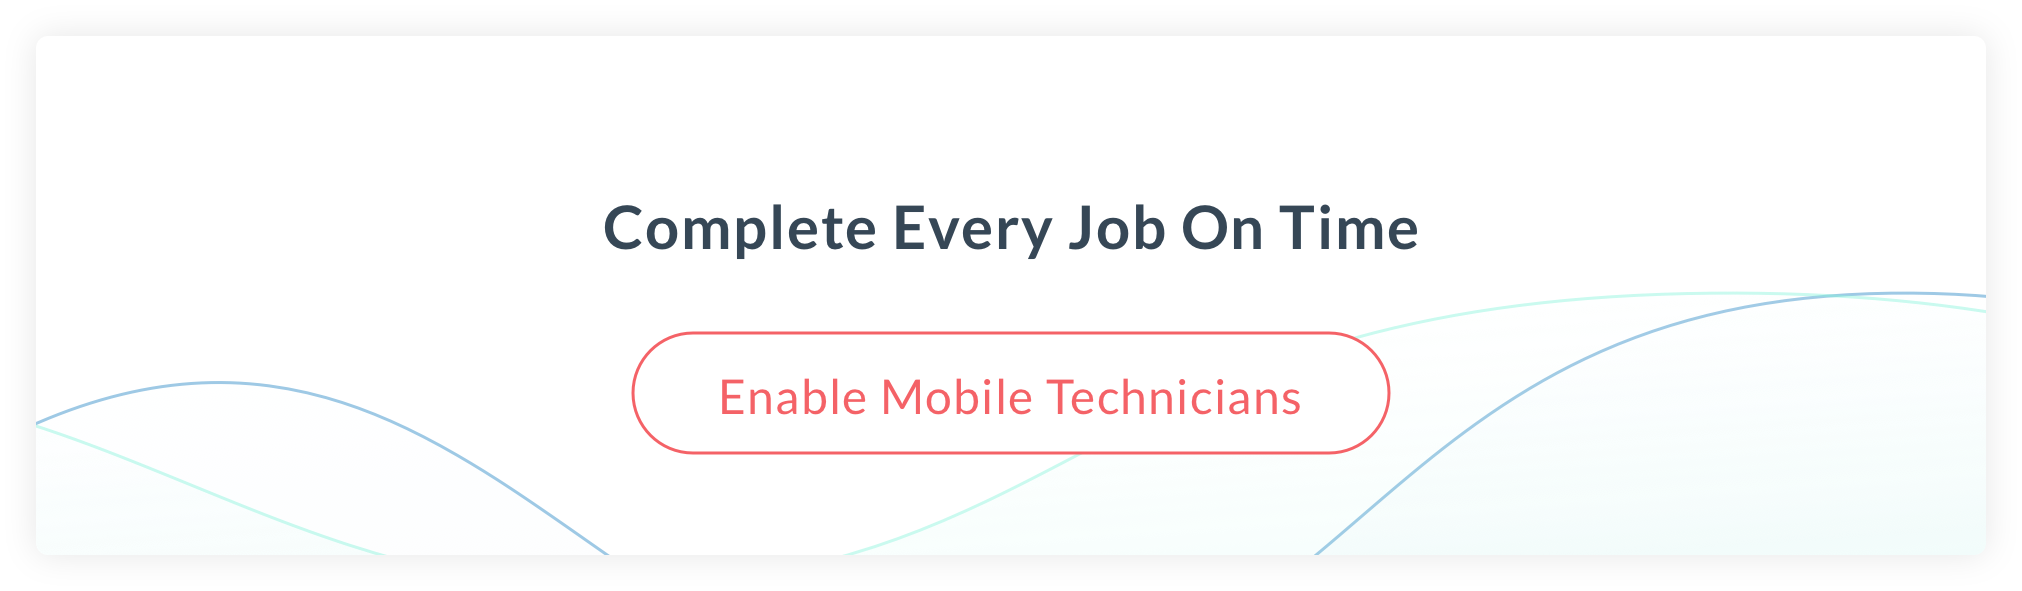 Enable Mobile Technicians